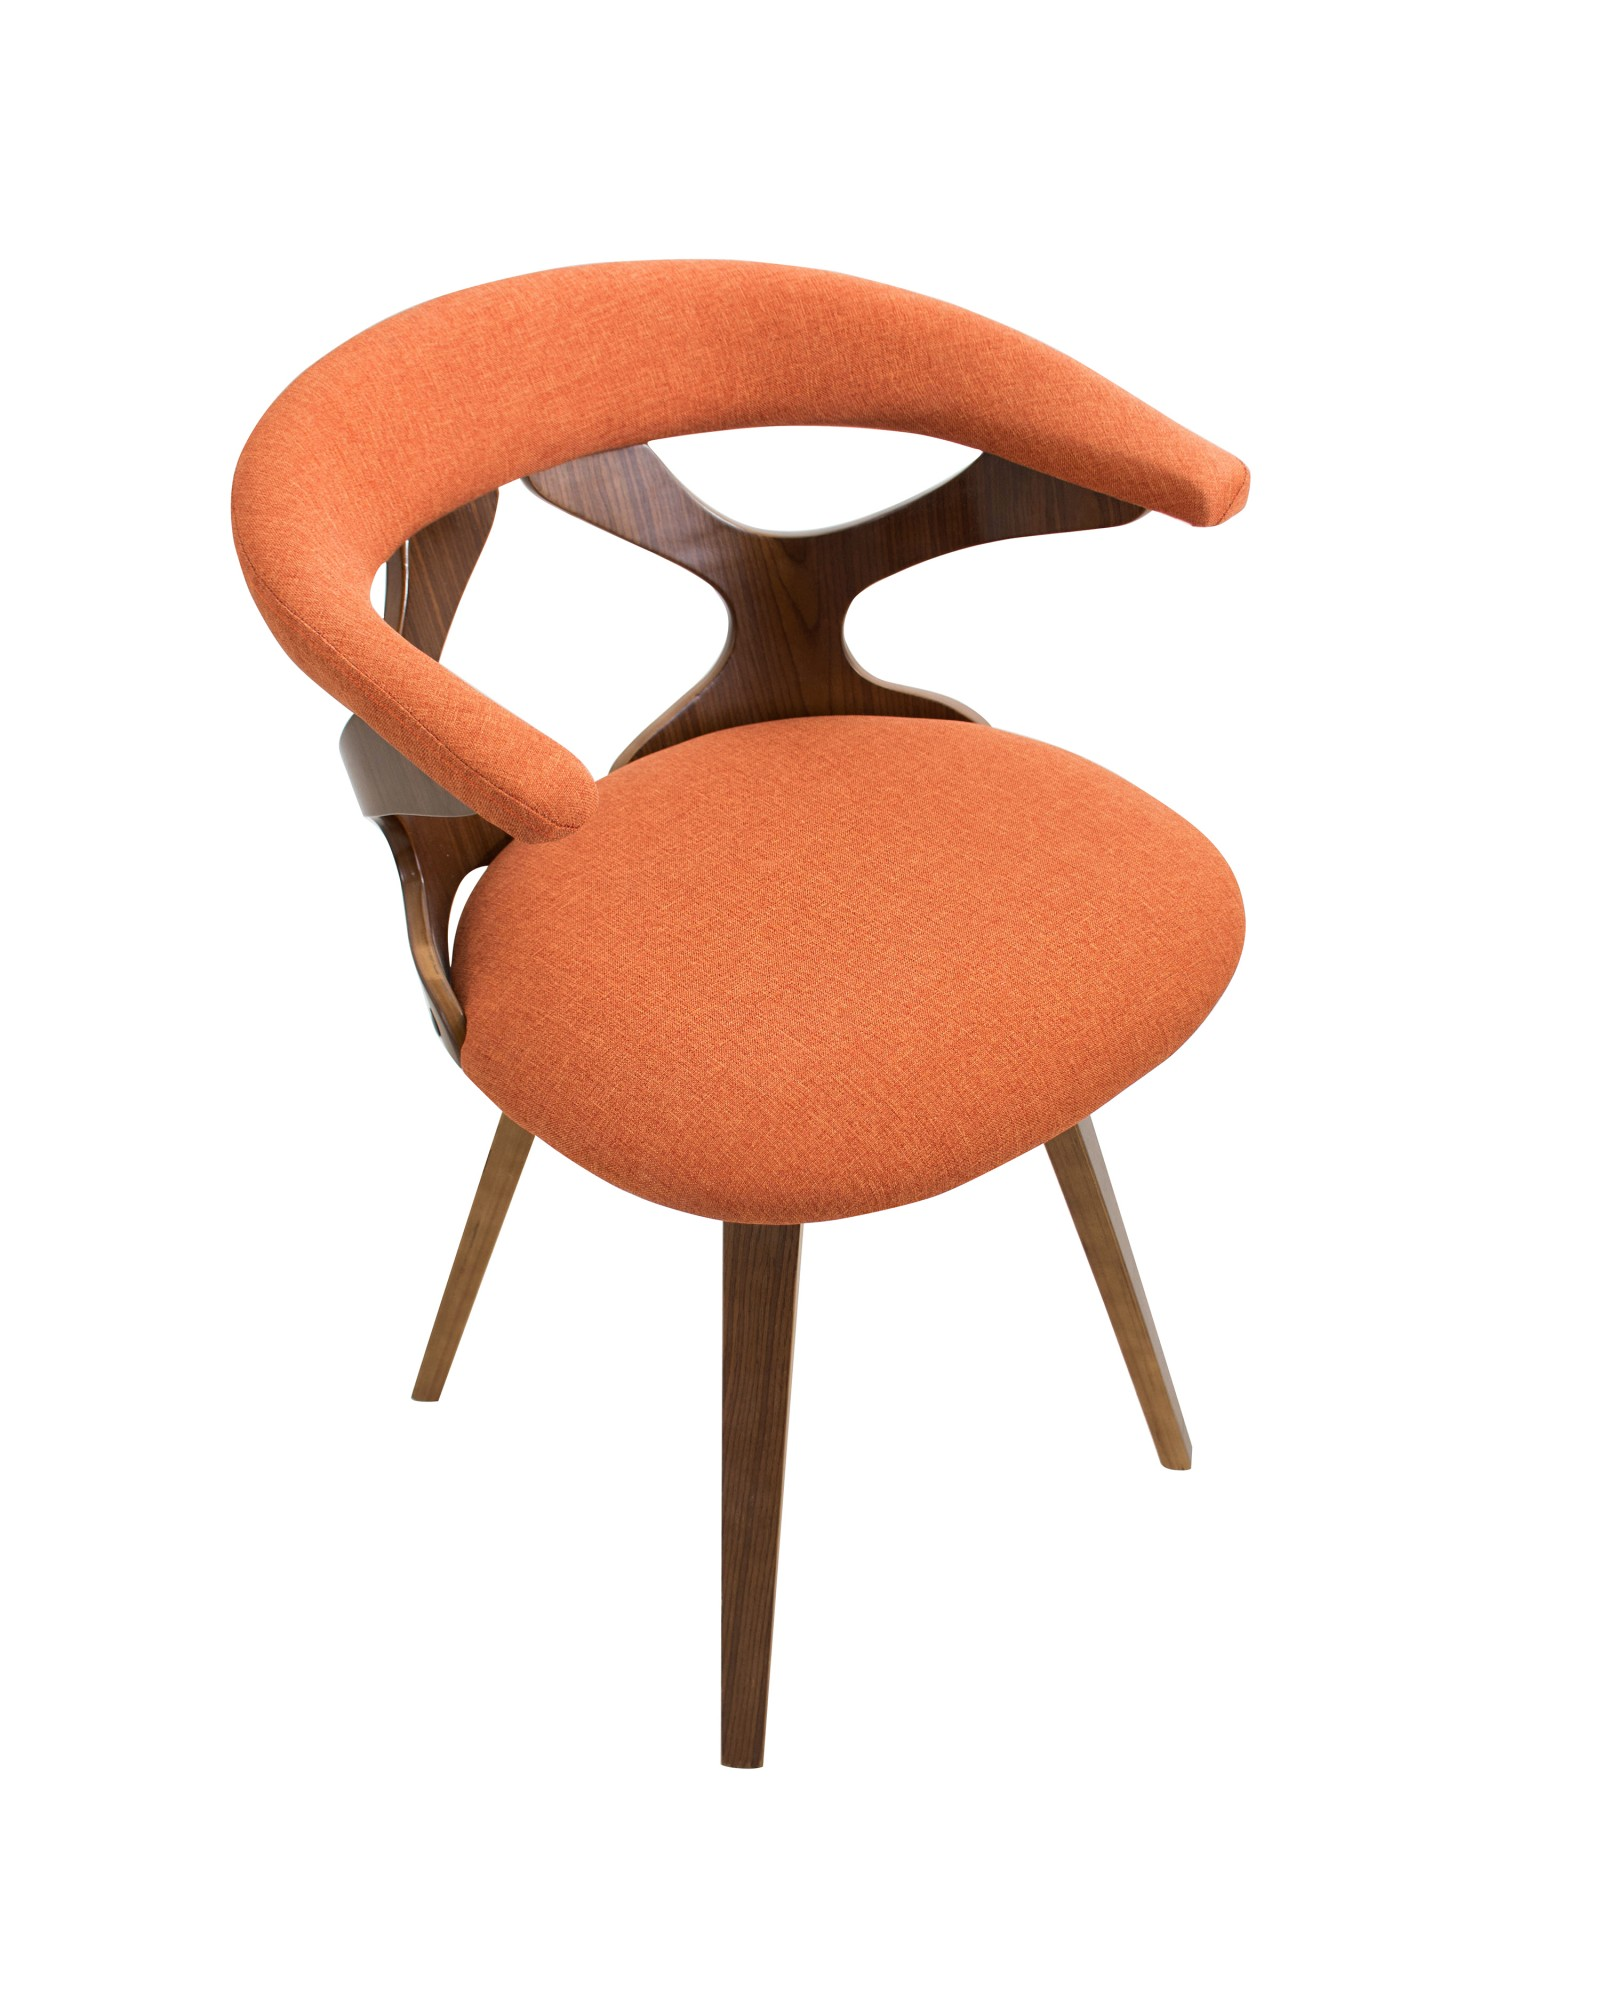 Gardenia Mid-century Modern Dining/Accent Chair with Swivel in Walnut Wood and Orange Fabric